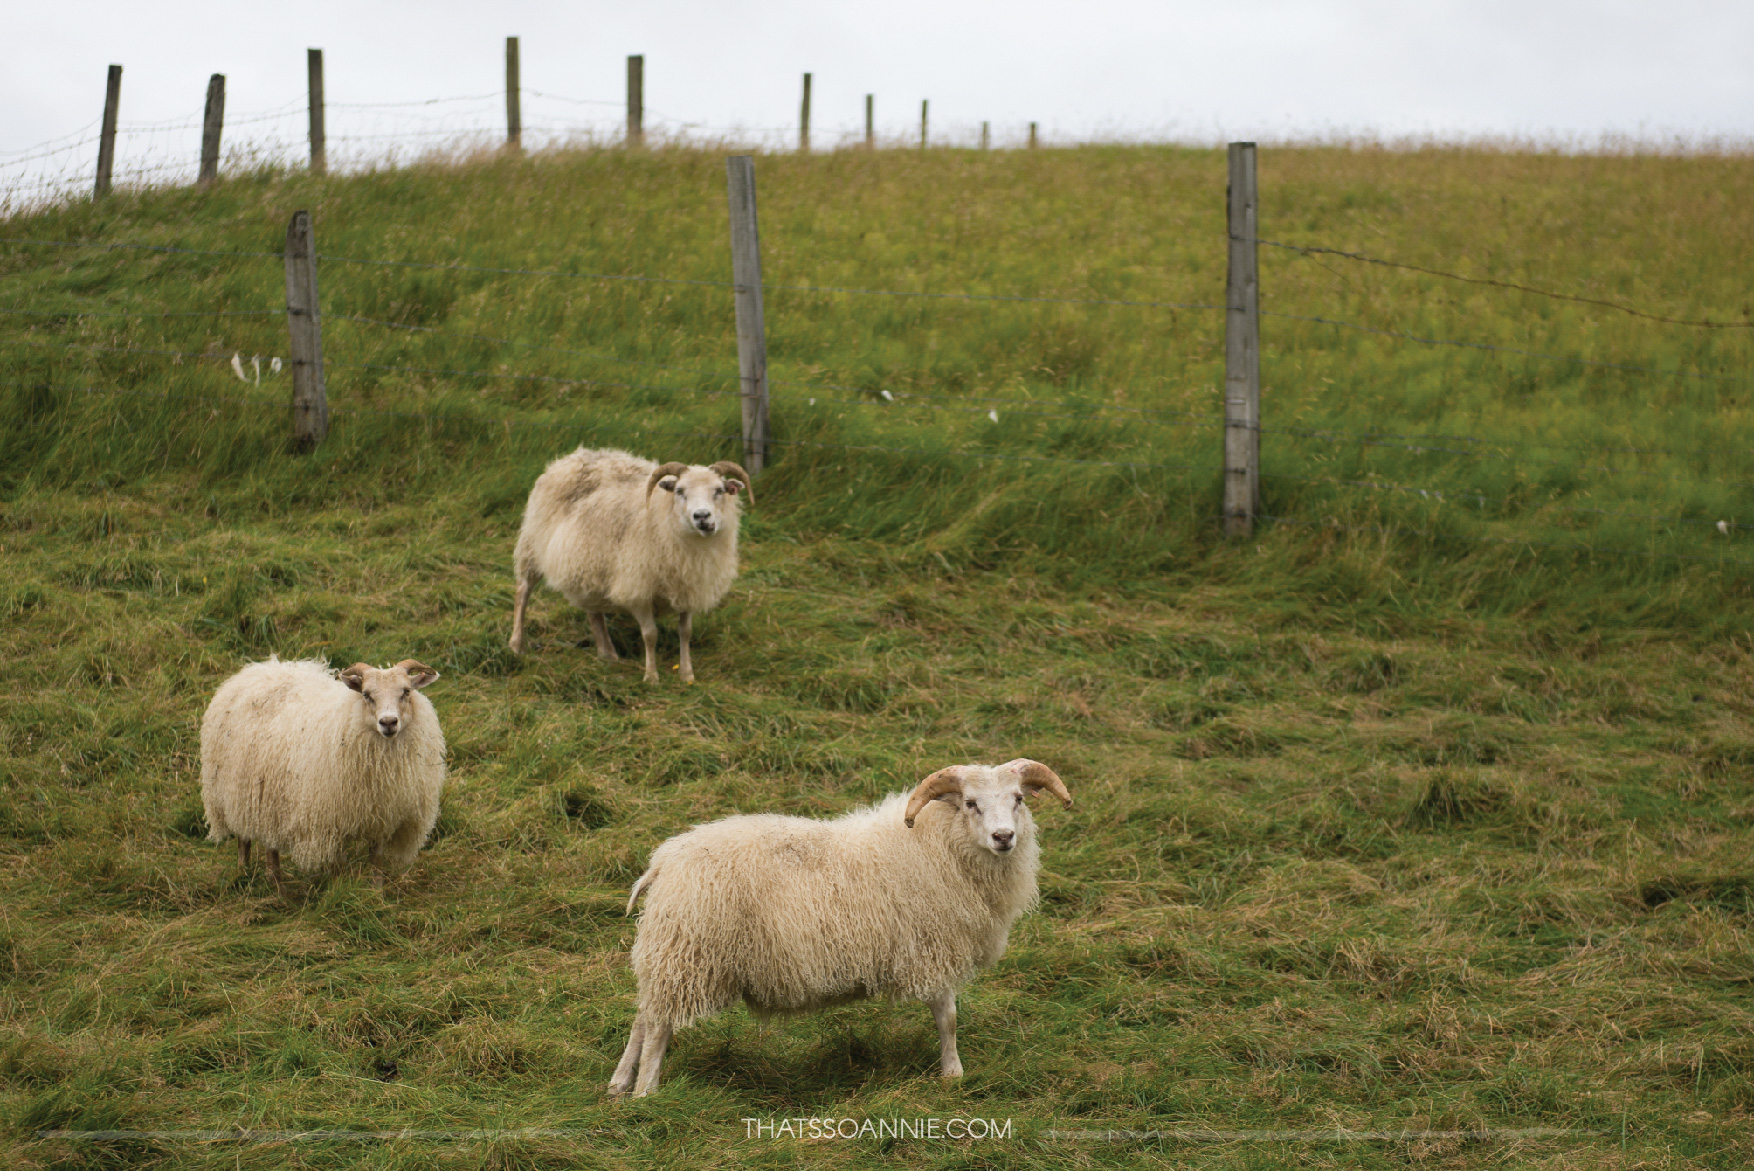 We passed by some skittish sheep on the way back to the Ring Road from the canyon.